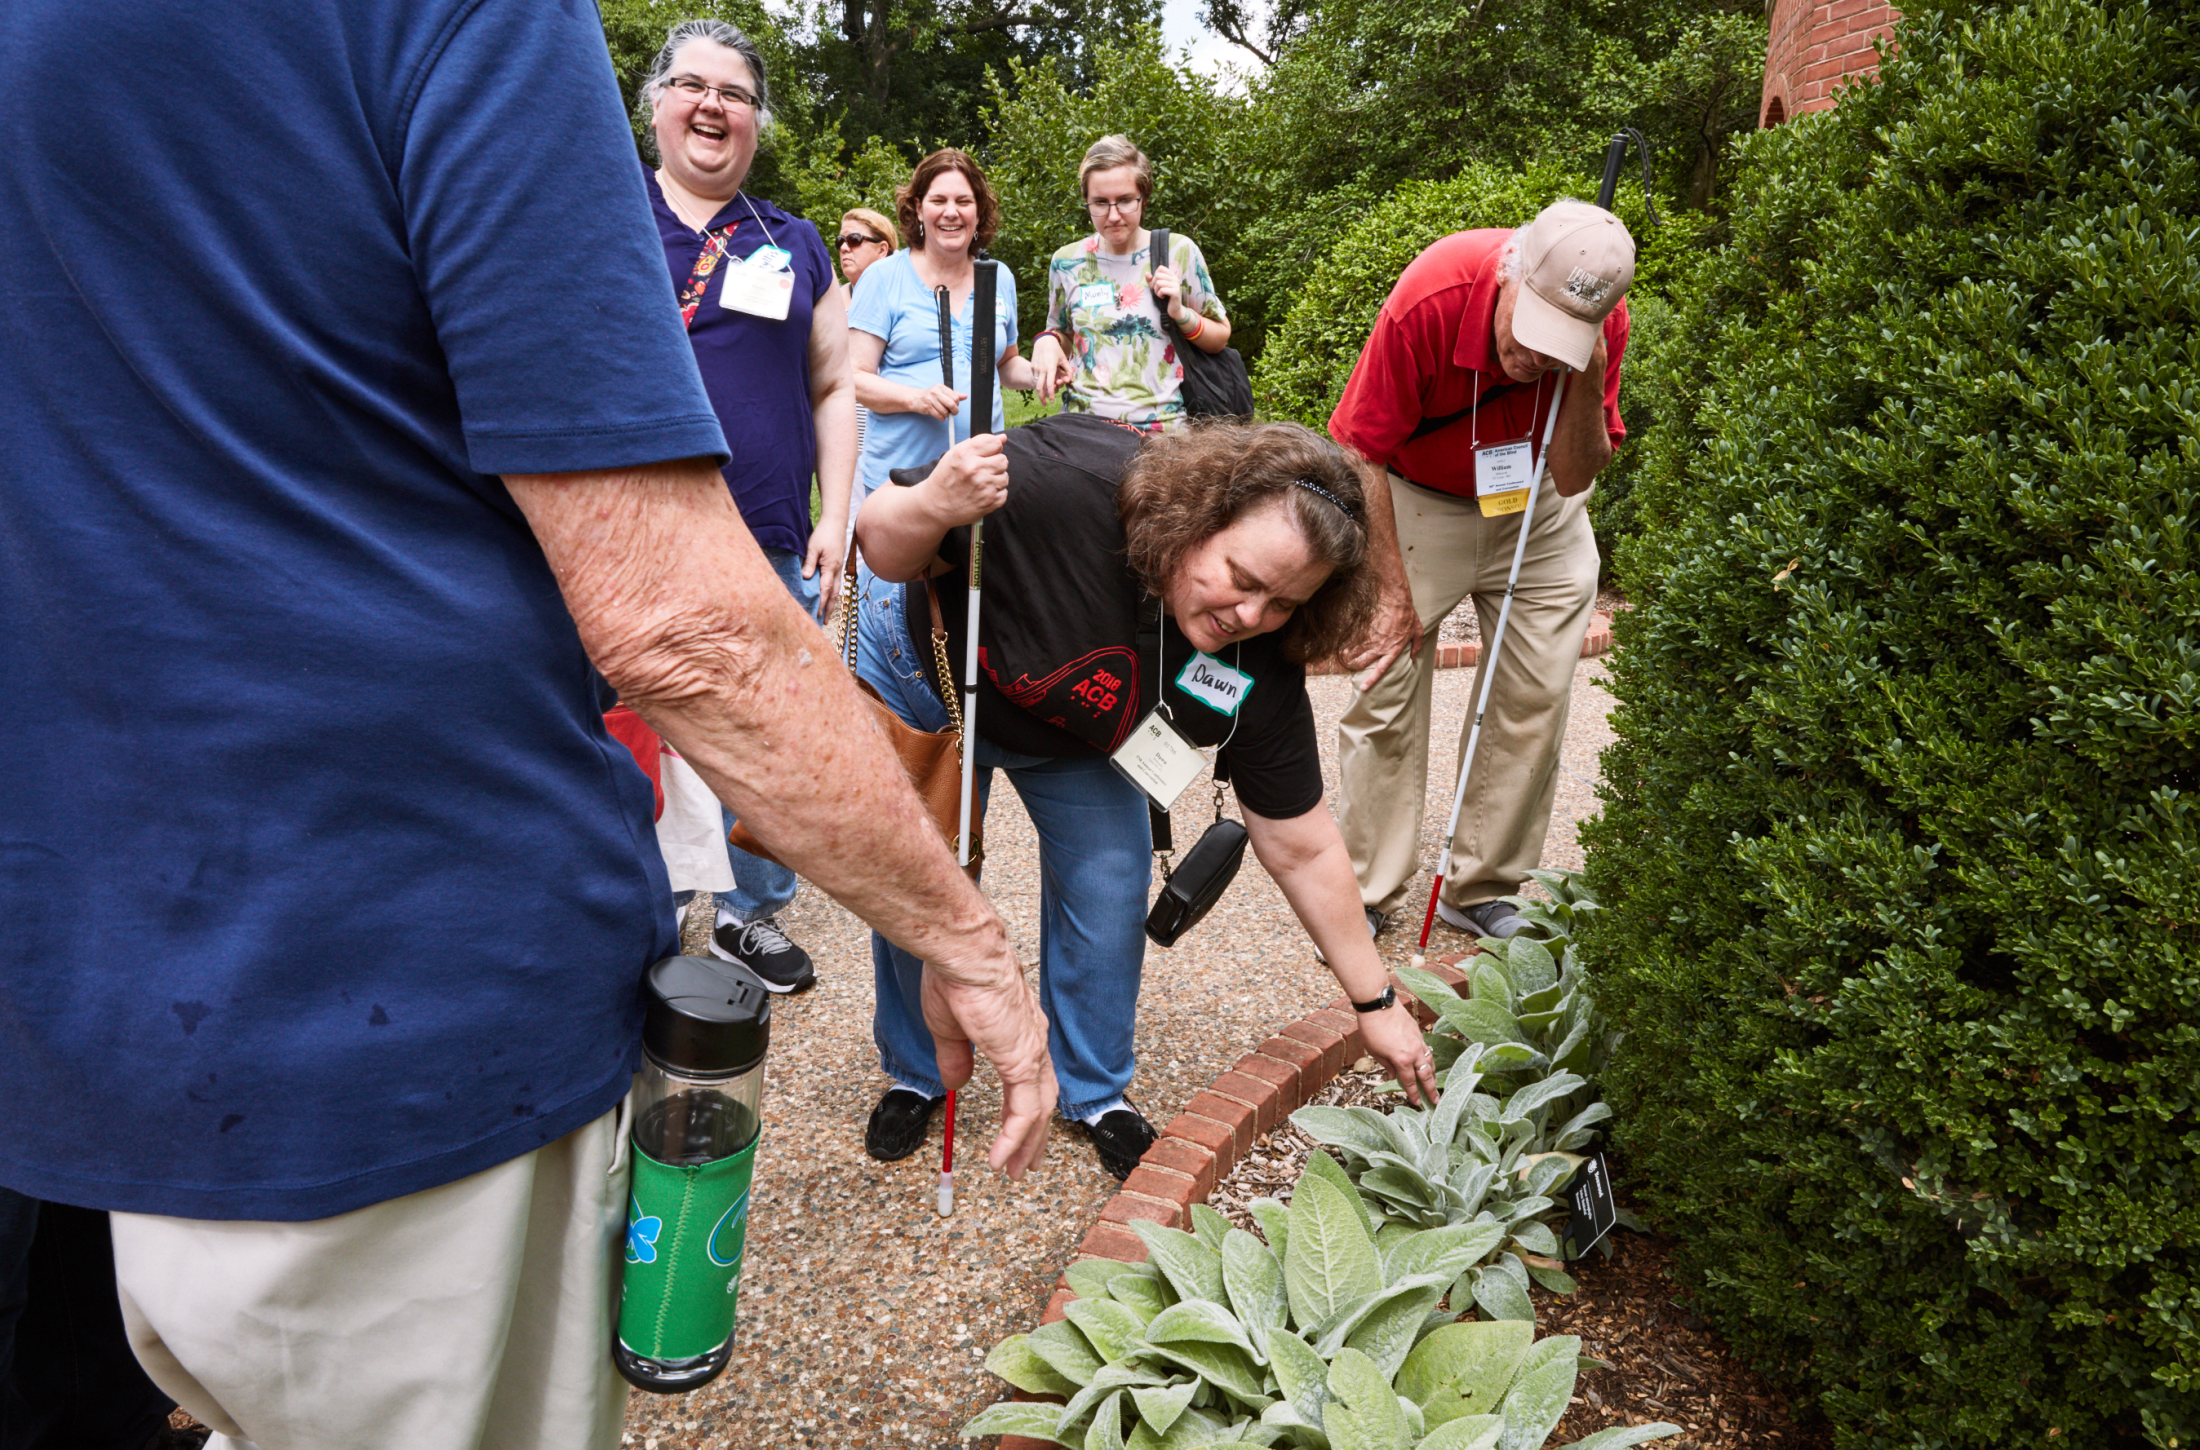 Art and Documentary Photography - Loading 070218_ACBConvention-StLouis_BotanicalGardens_1095.png